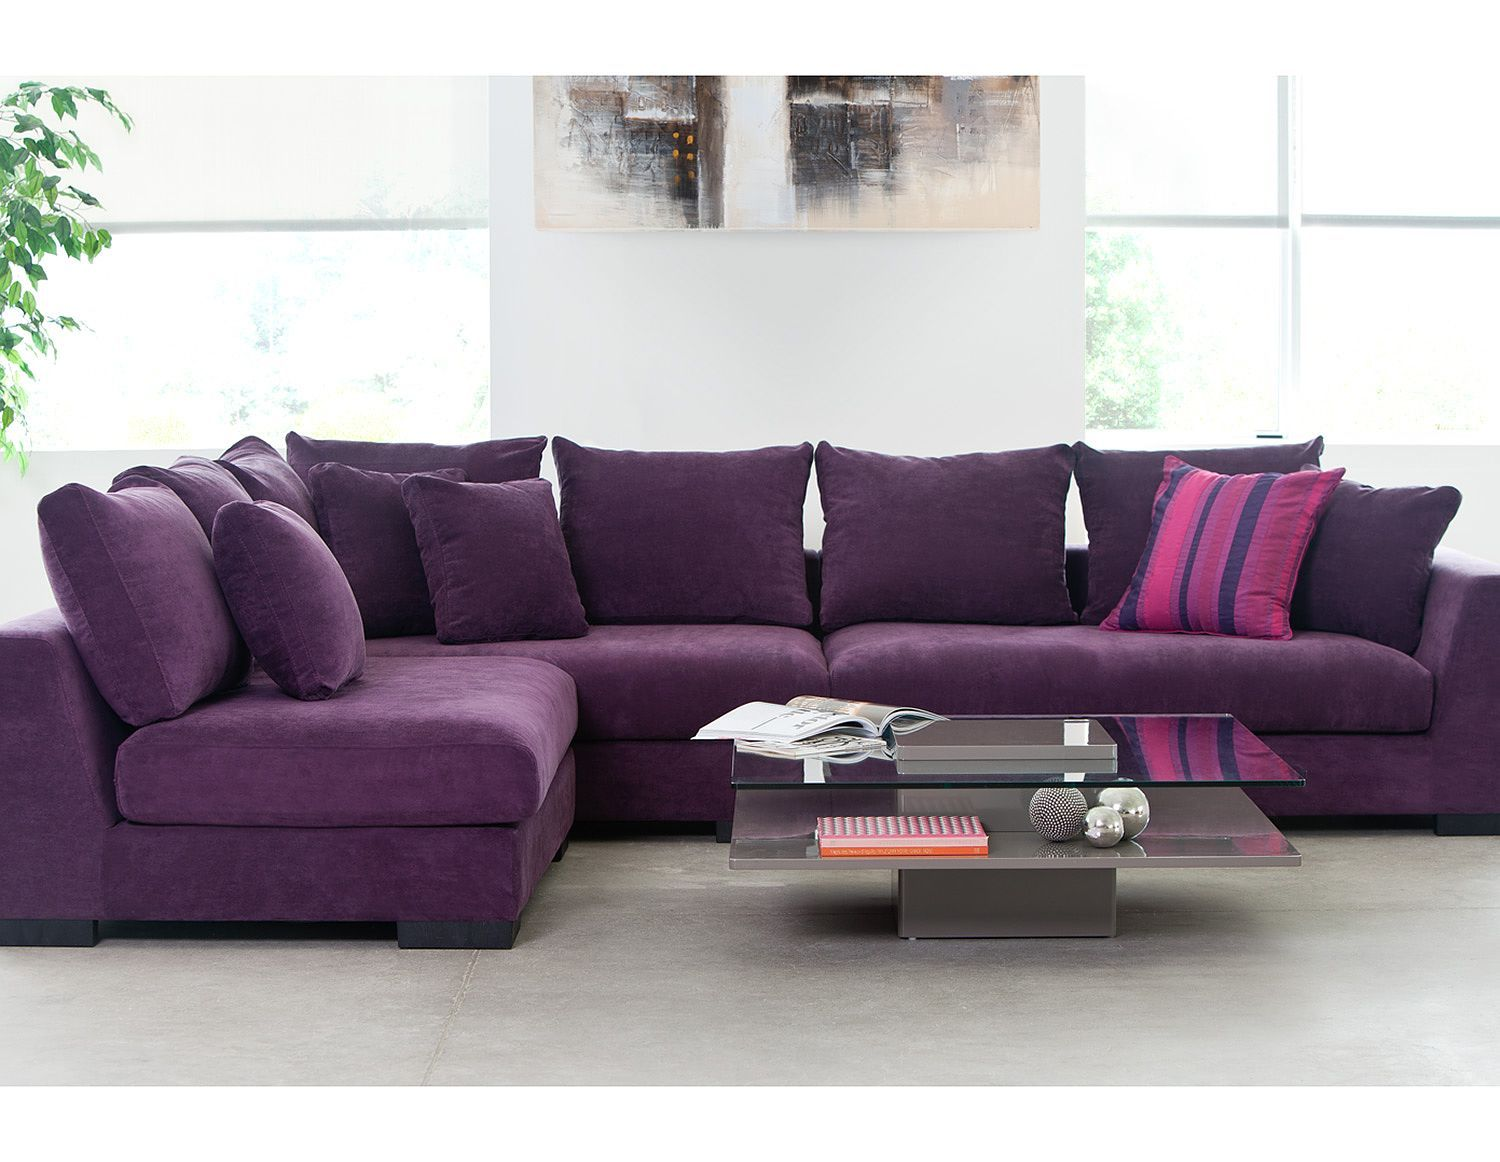 Purple Color Sofa Best 25 Purple Sofa Ideas On Pinterest Living Room Sofas Thesofa